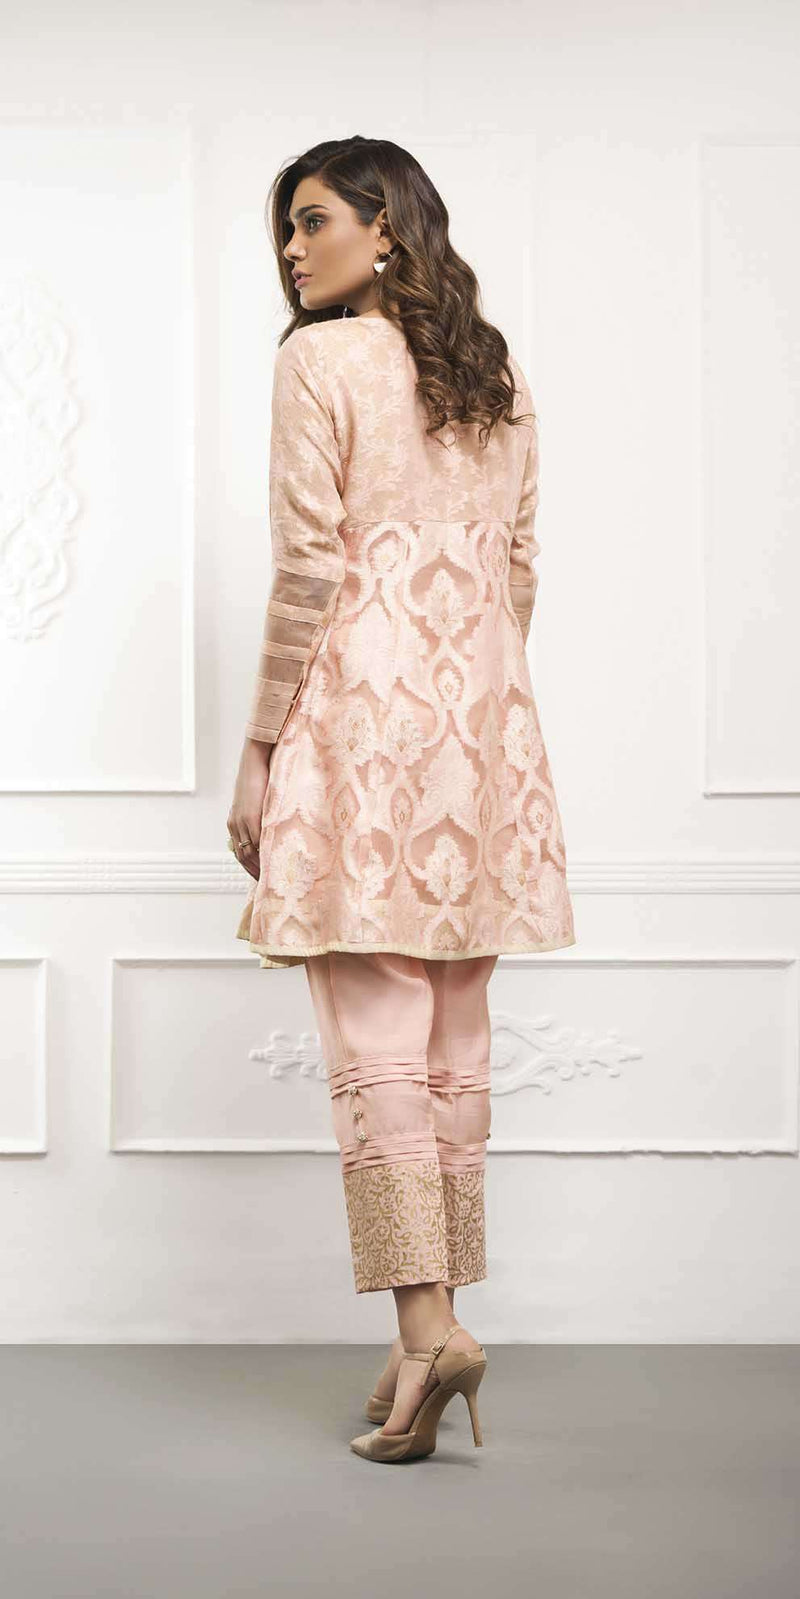 Luxury Pret, Pakistani Fashion Designer PEACH PEPLUM - Phatyma Khan